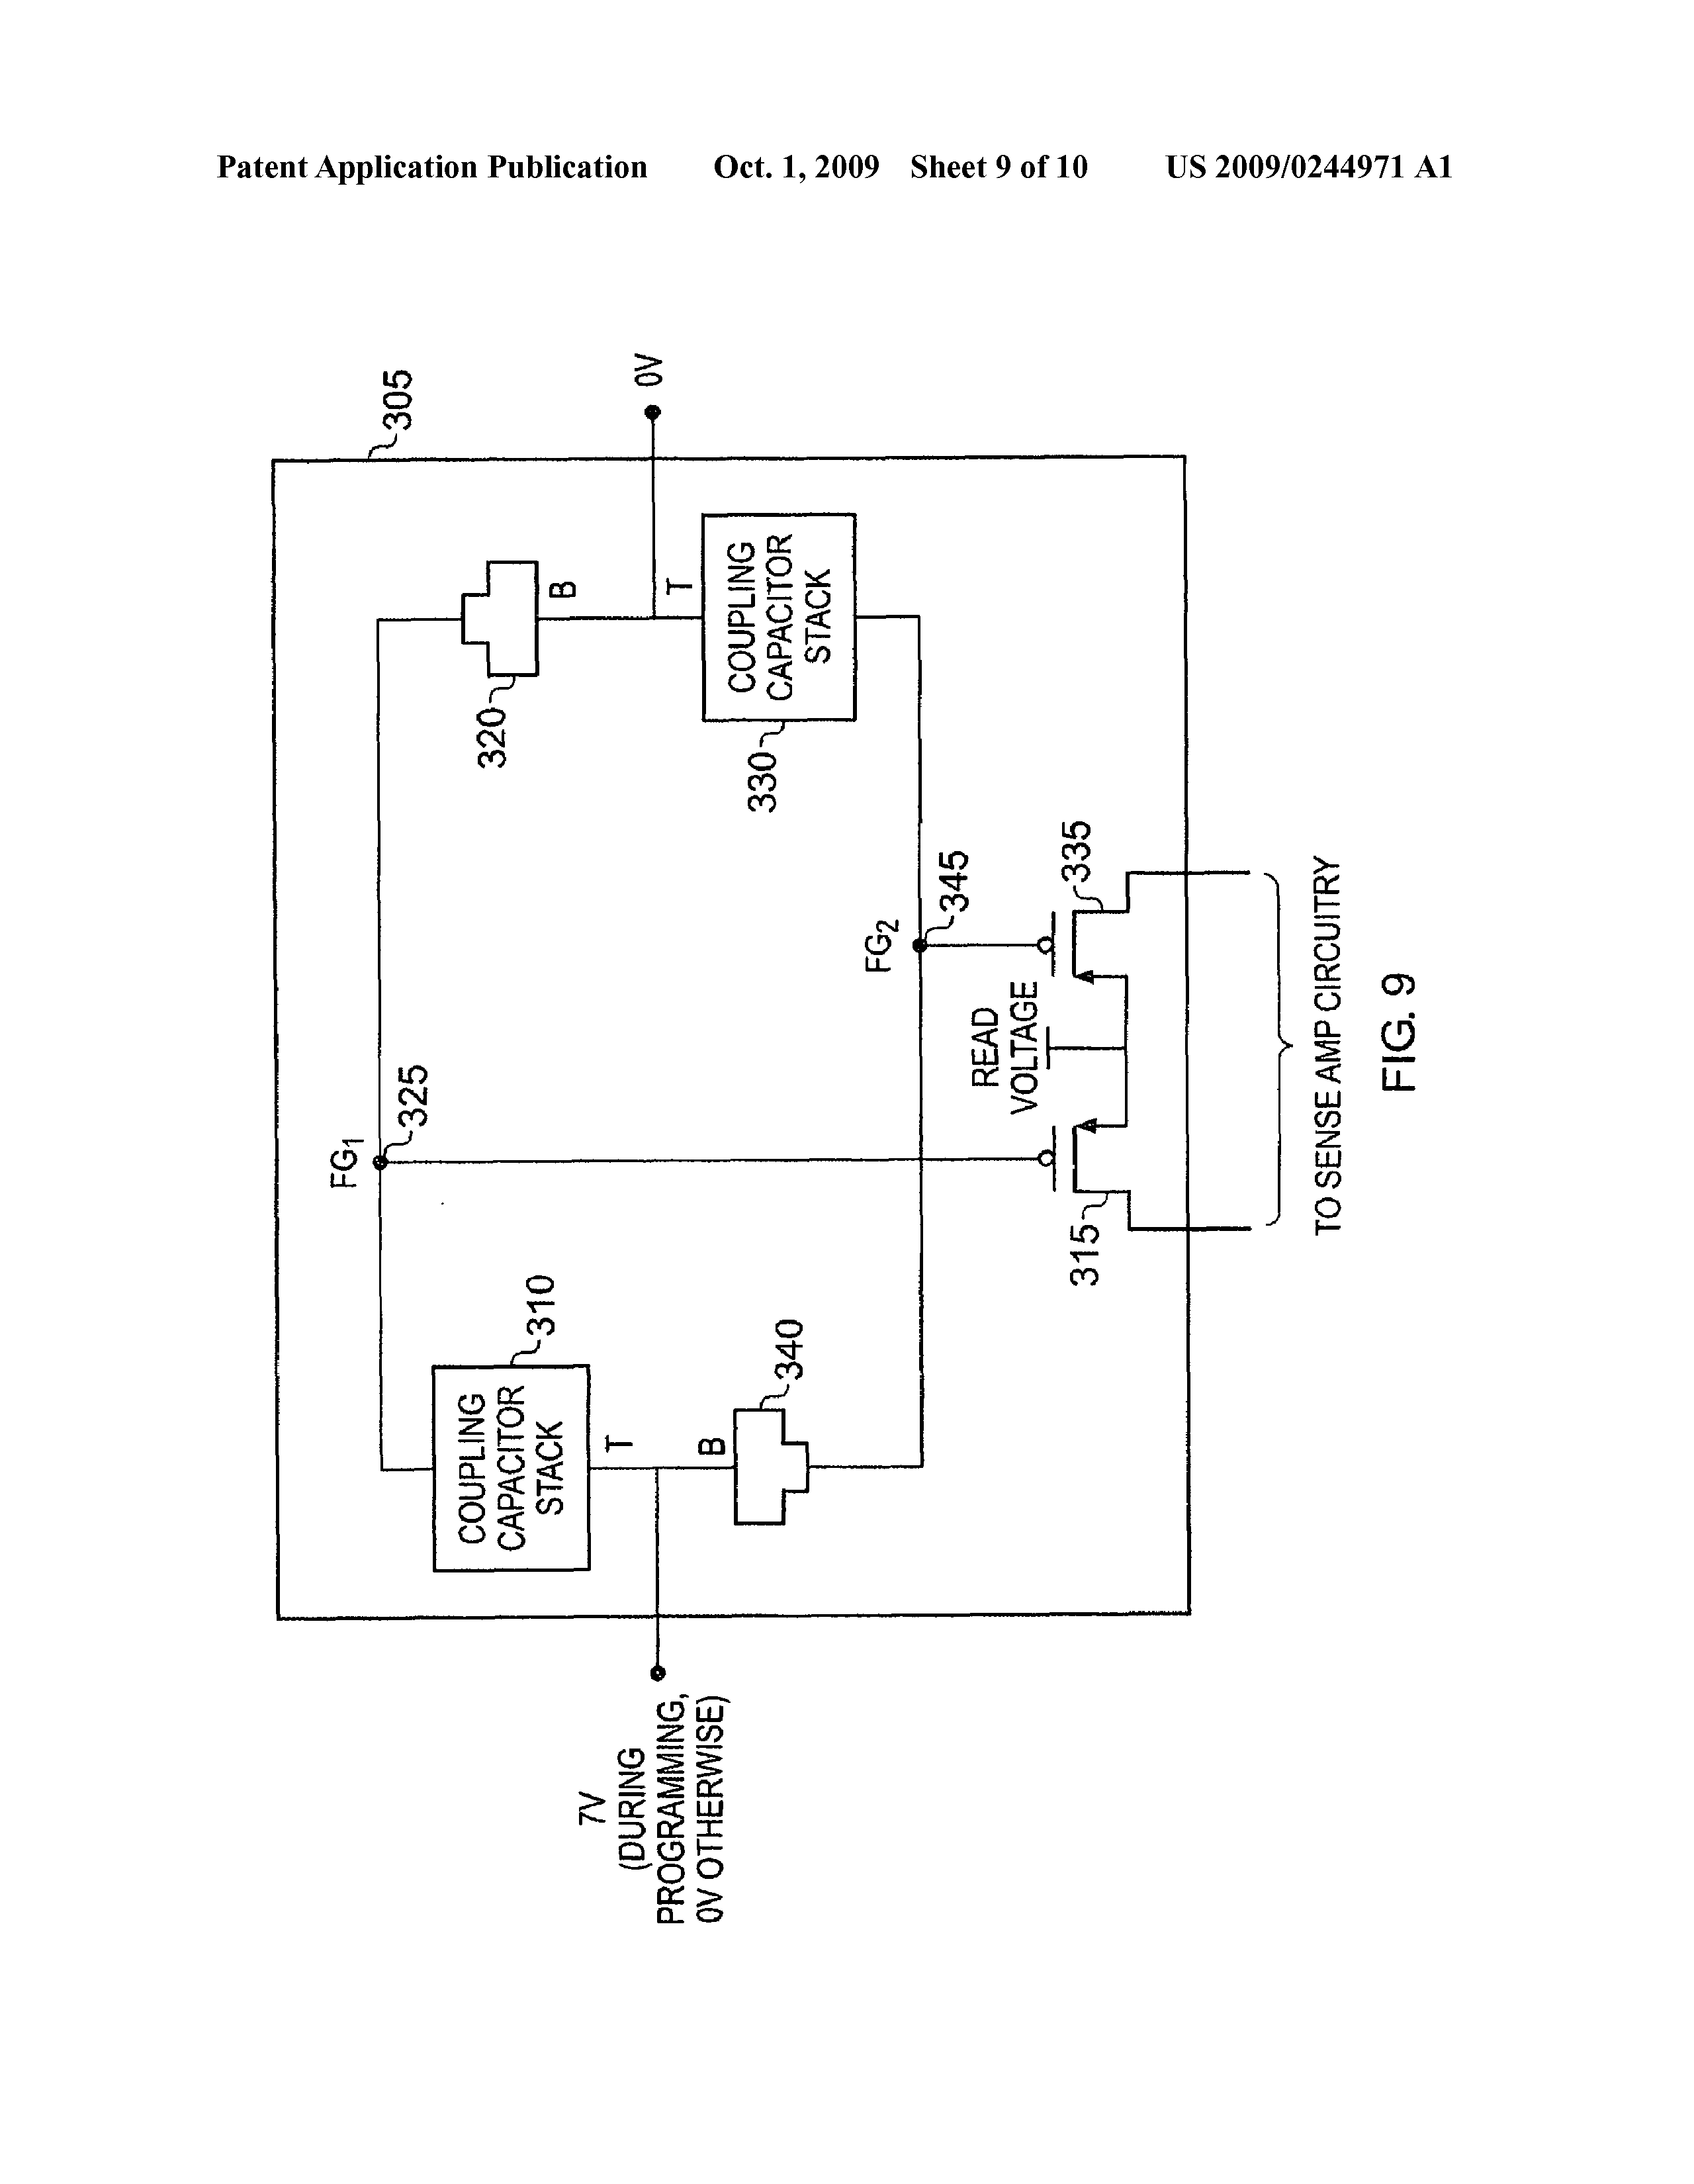 Gb 2458763 A Memory Cell With Read Transistor Tunnelling How To Place Coupling Capacitor In Circuit Previous Next